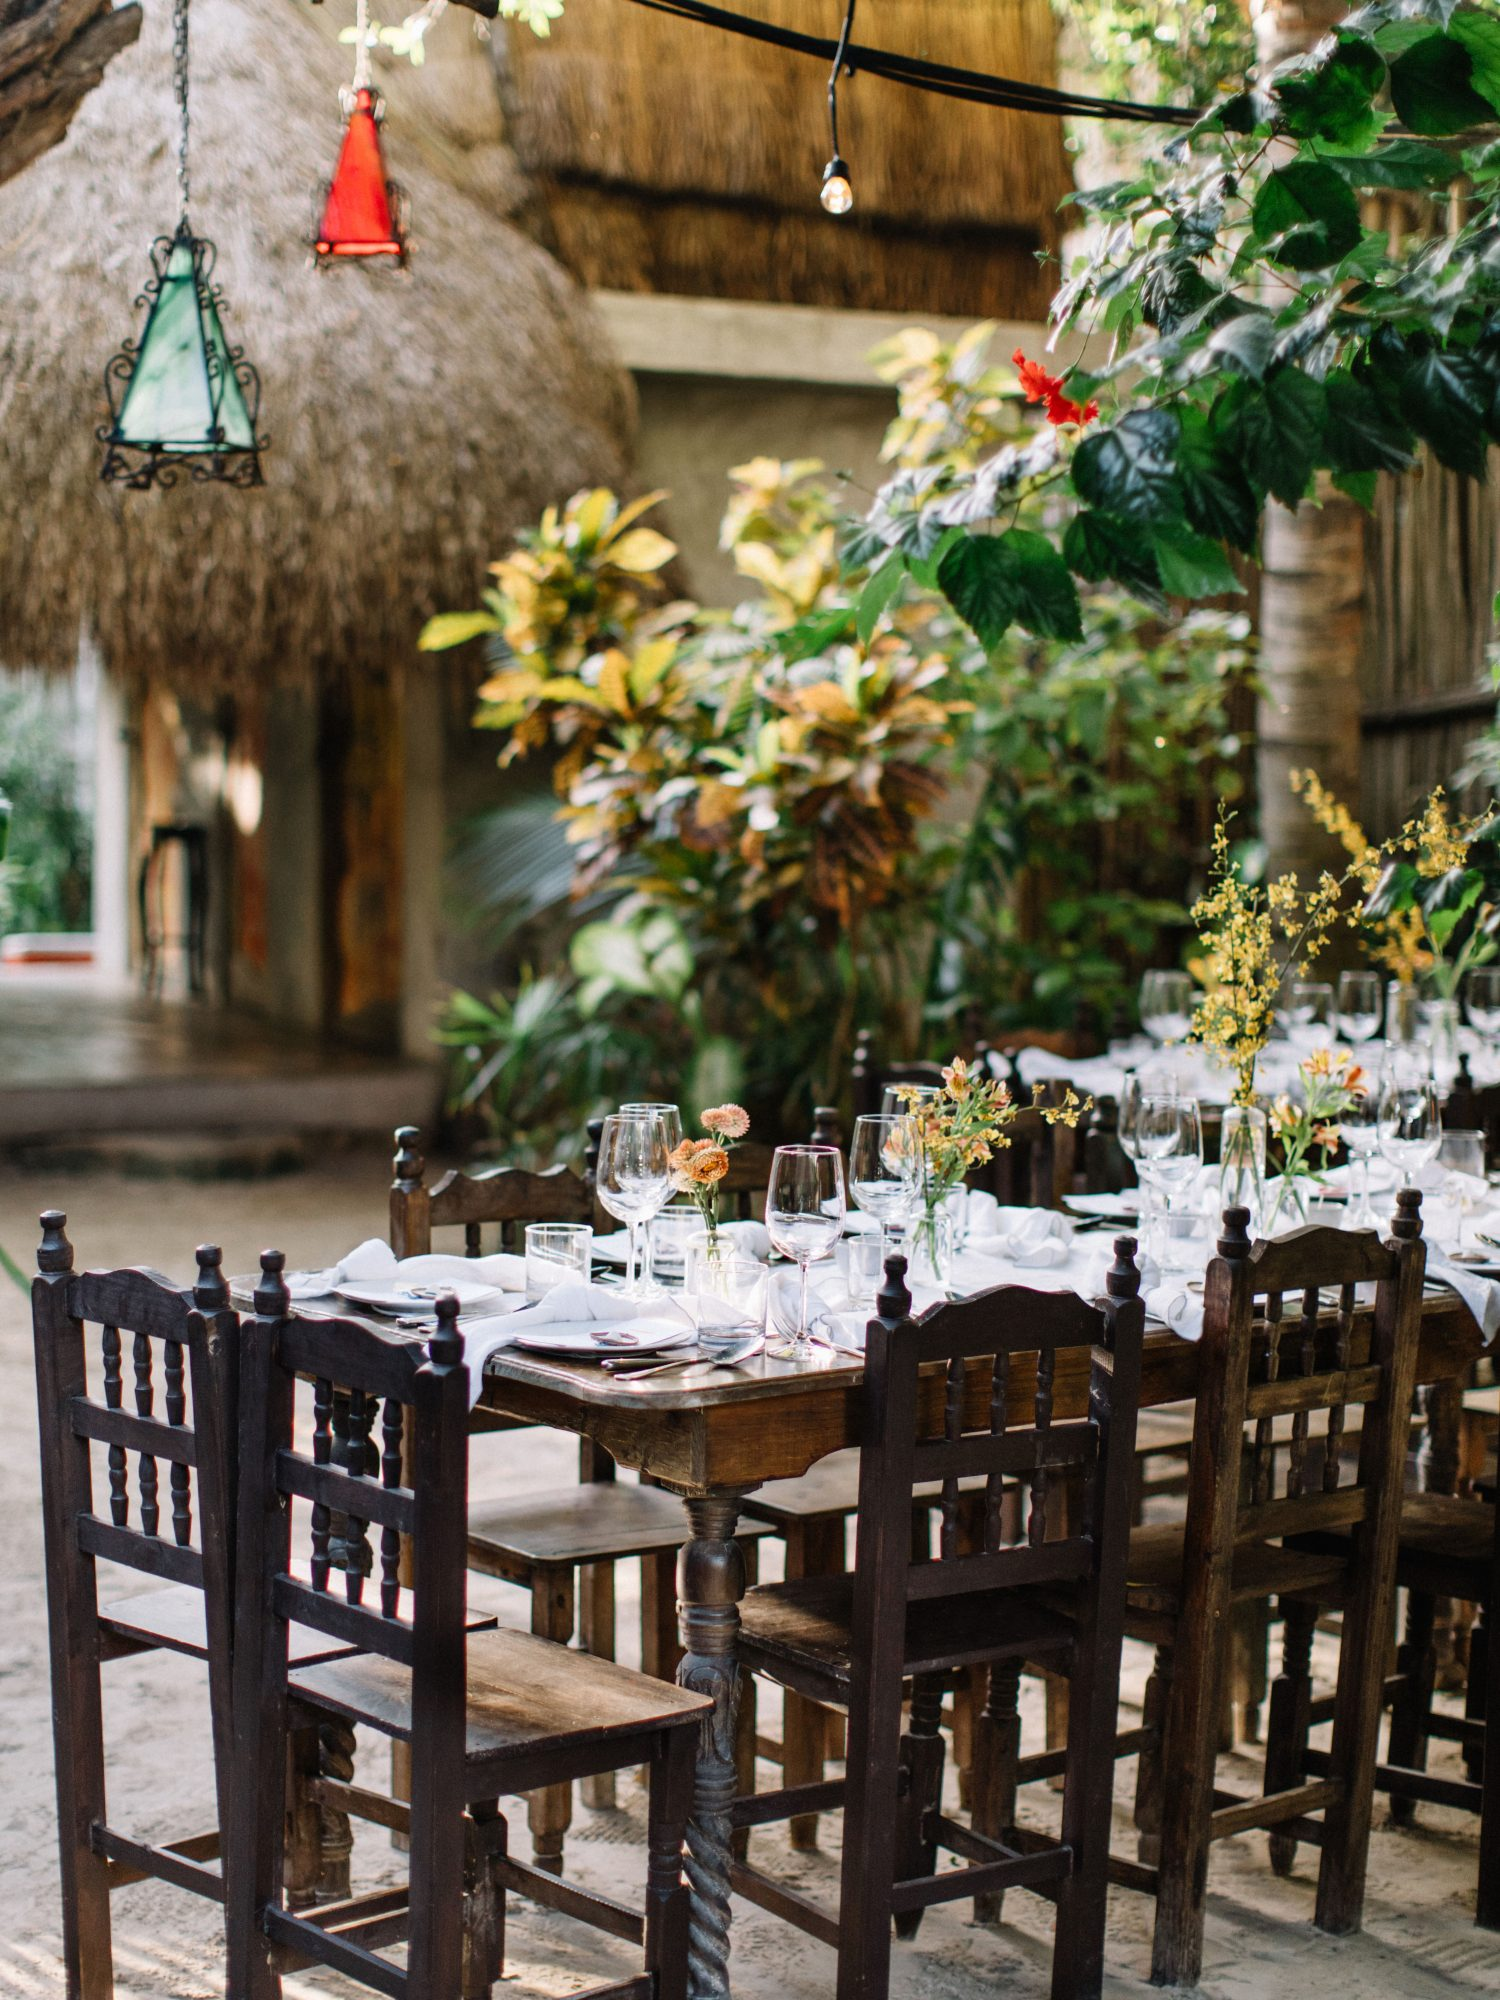 ariel trevor rehearsal dinner tulum mexico wooden table place setting